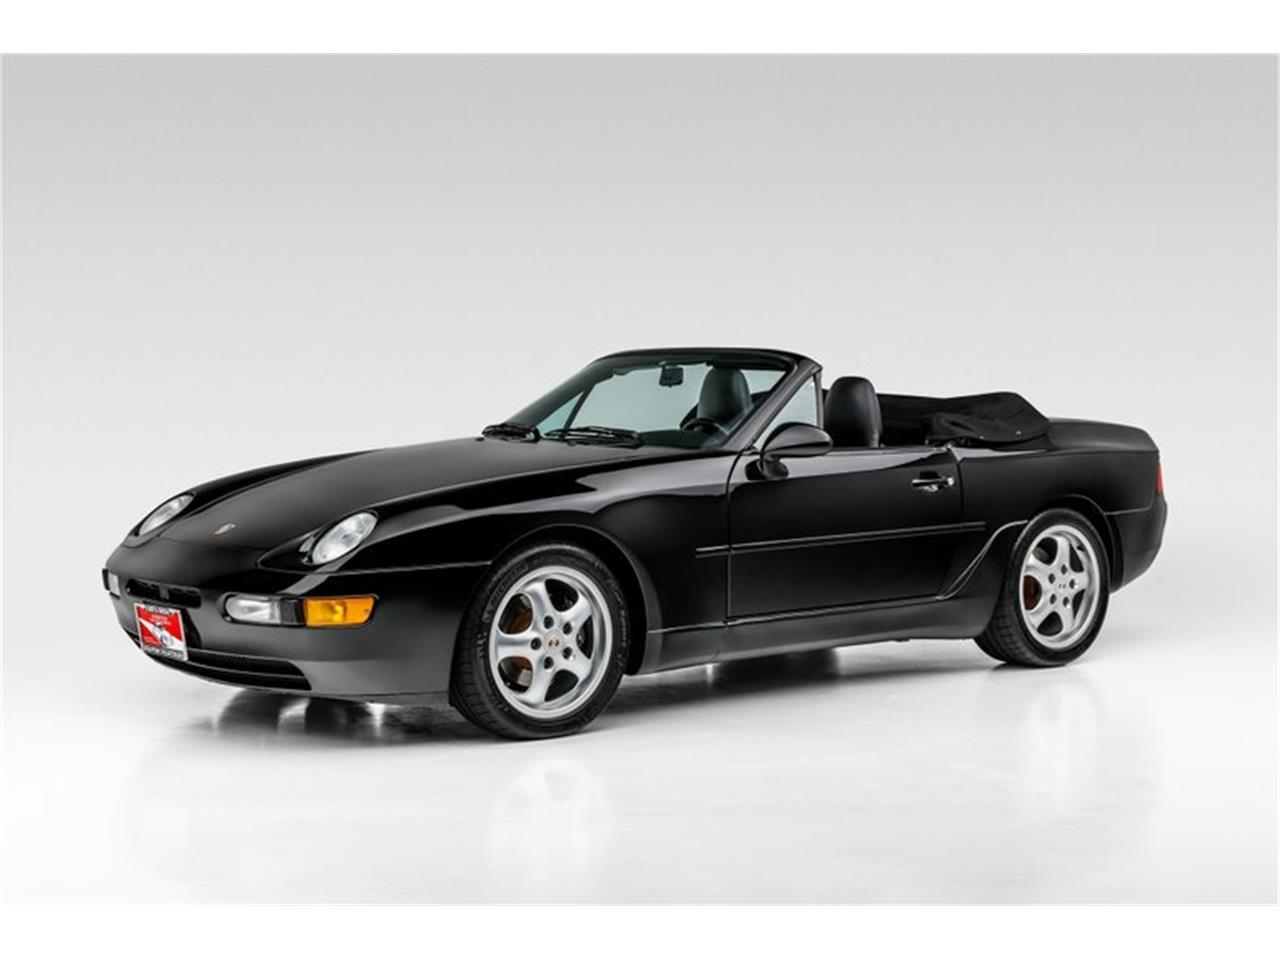 1995 Porsche 968 (CC-1356945) for sale in Costa Mesa, California